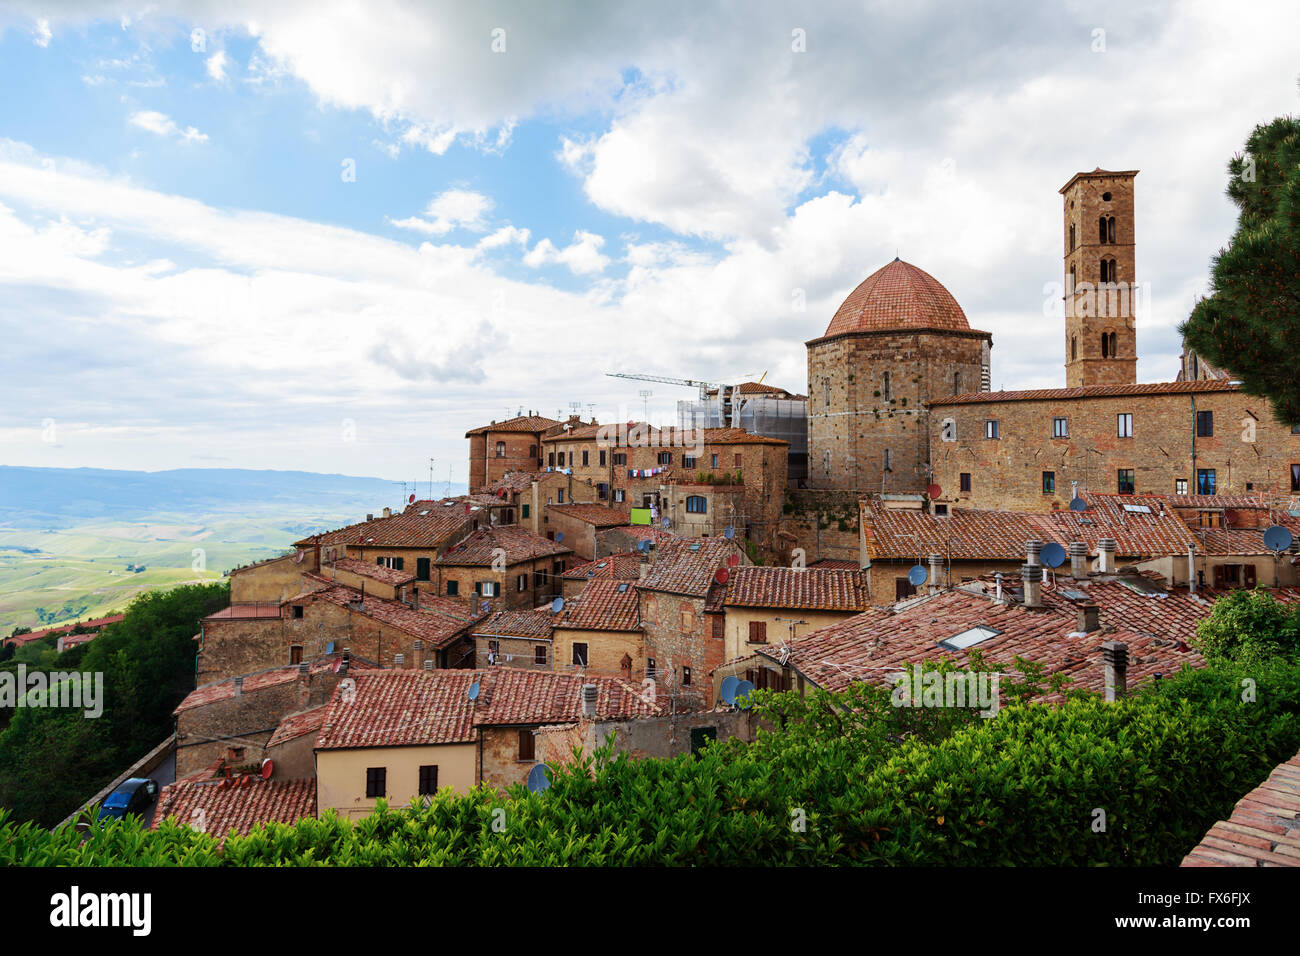 Ancient center of village Volterra, Tuscany, Italy - Stock Image